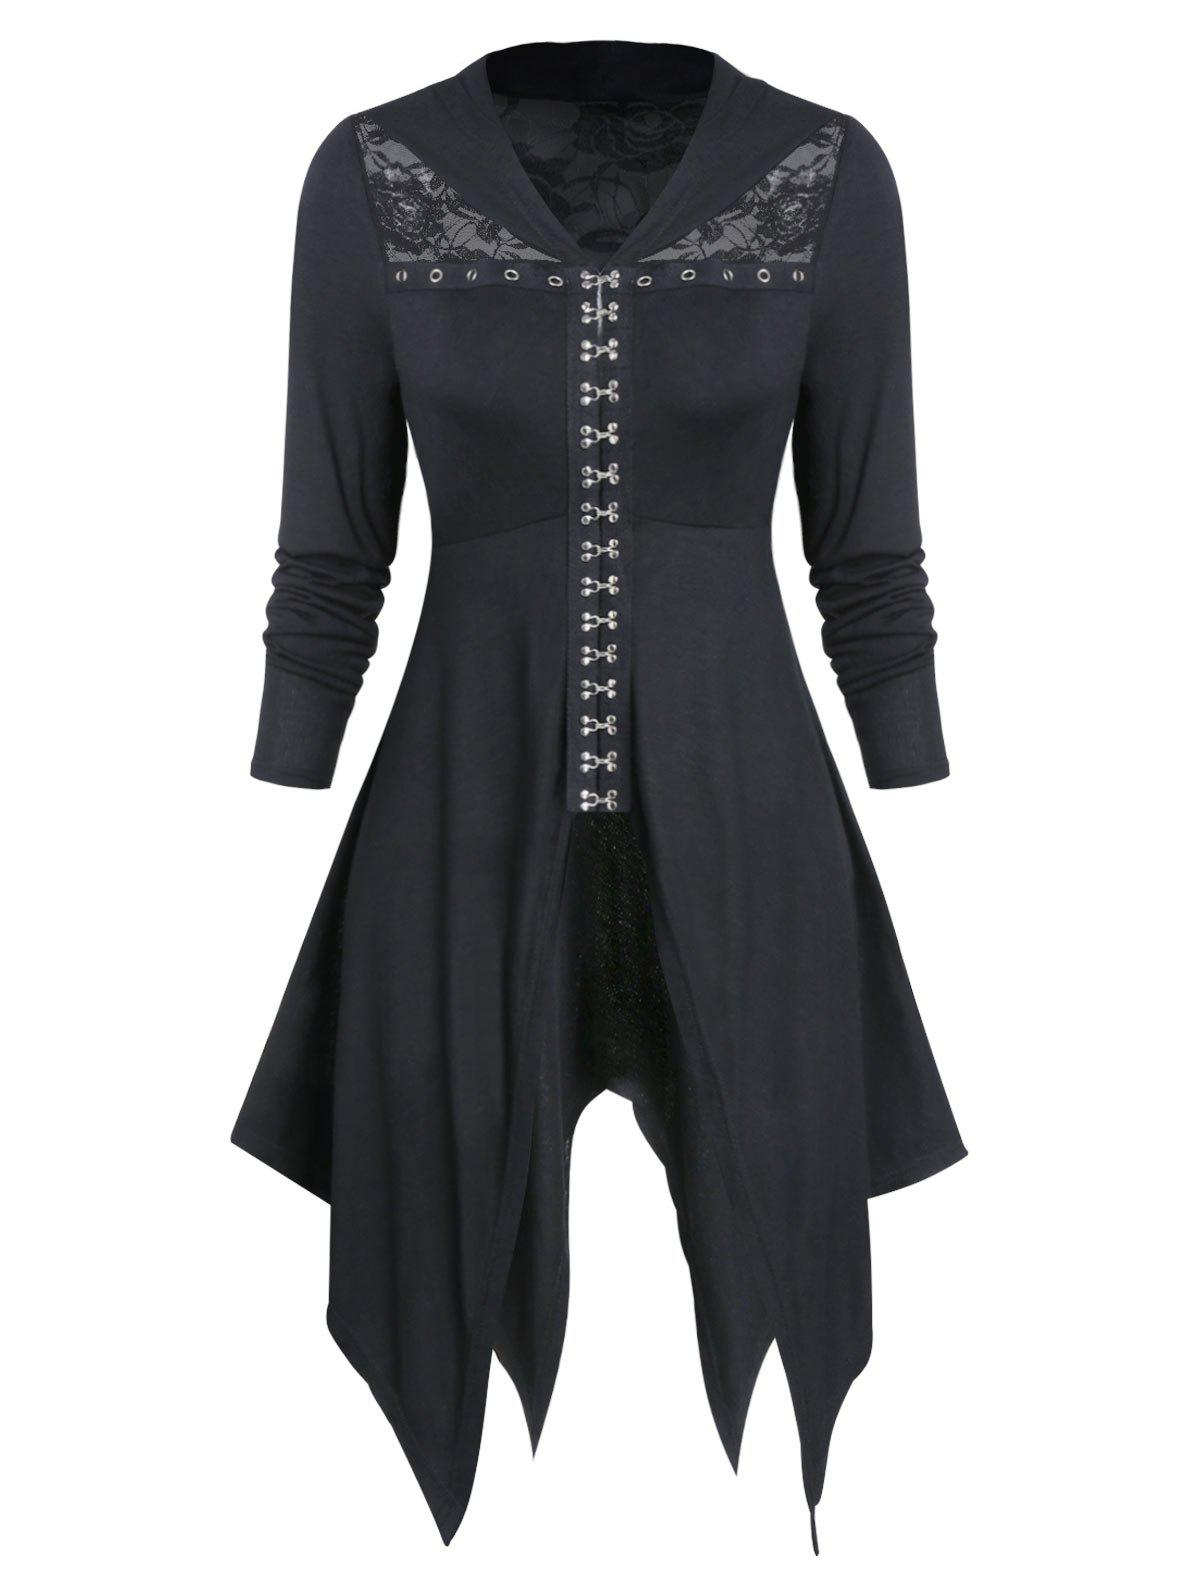 Unique Lace Insert Hook and Eye Gothic Hanky Hem Top